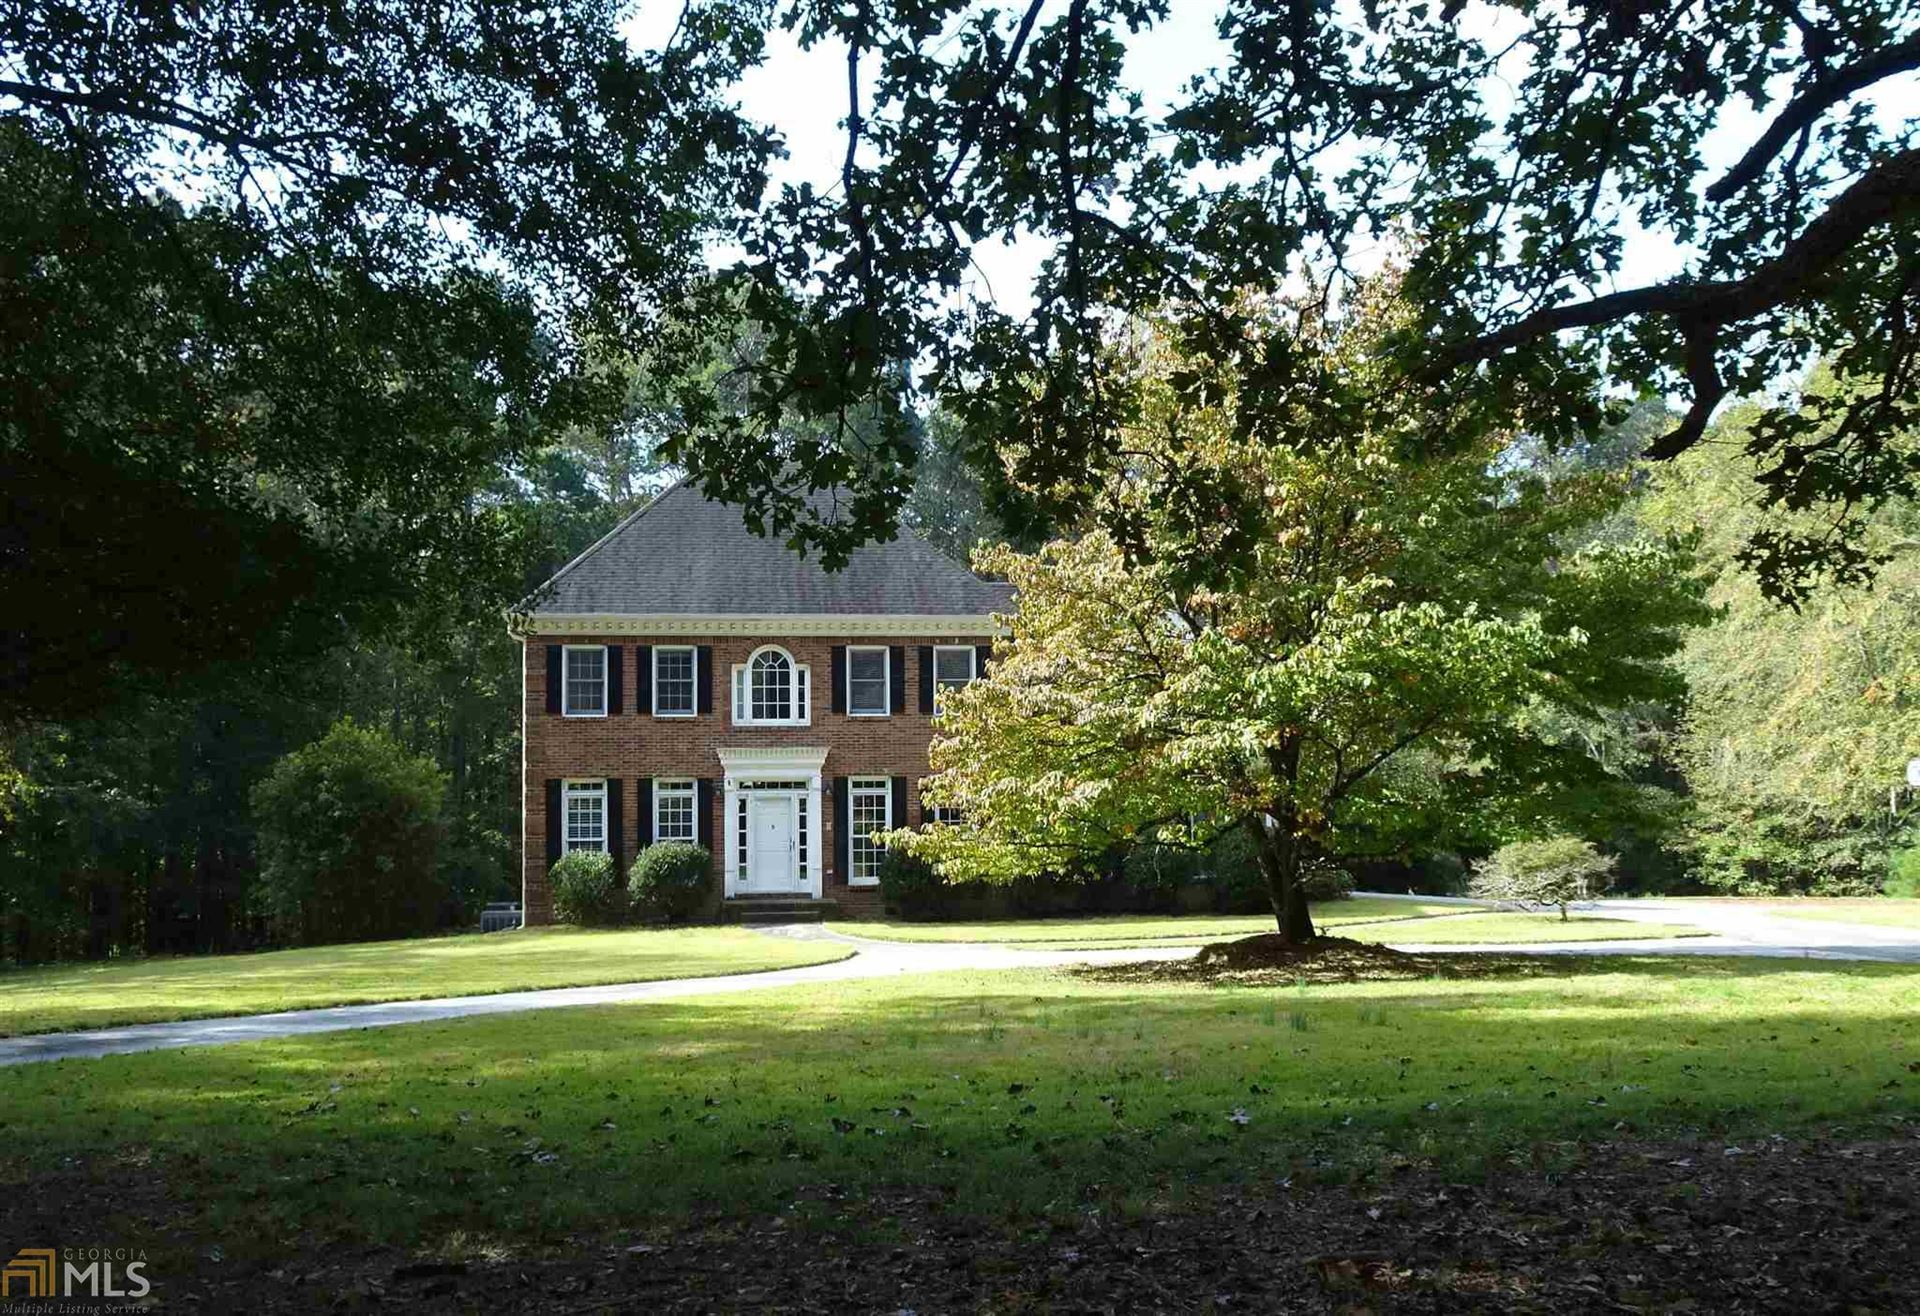 100 Highlands Ln, Oxford, GA 30054 - #: 8870746